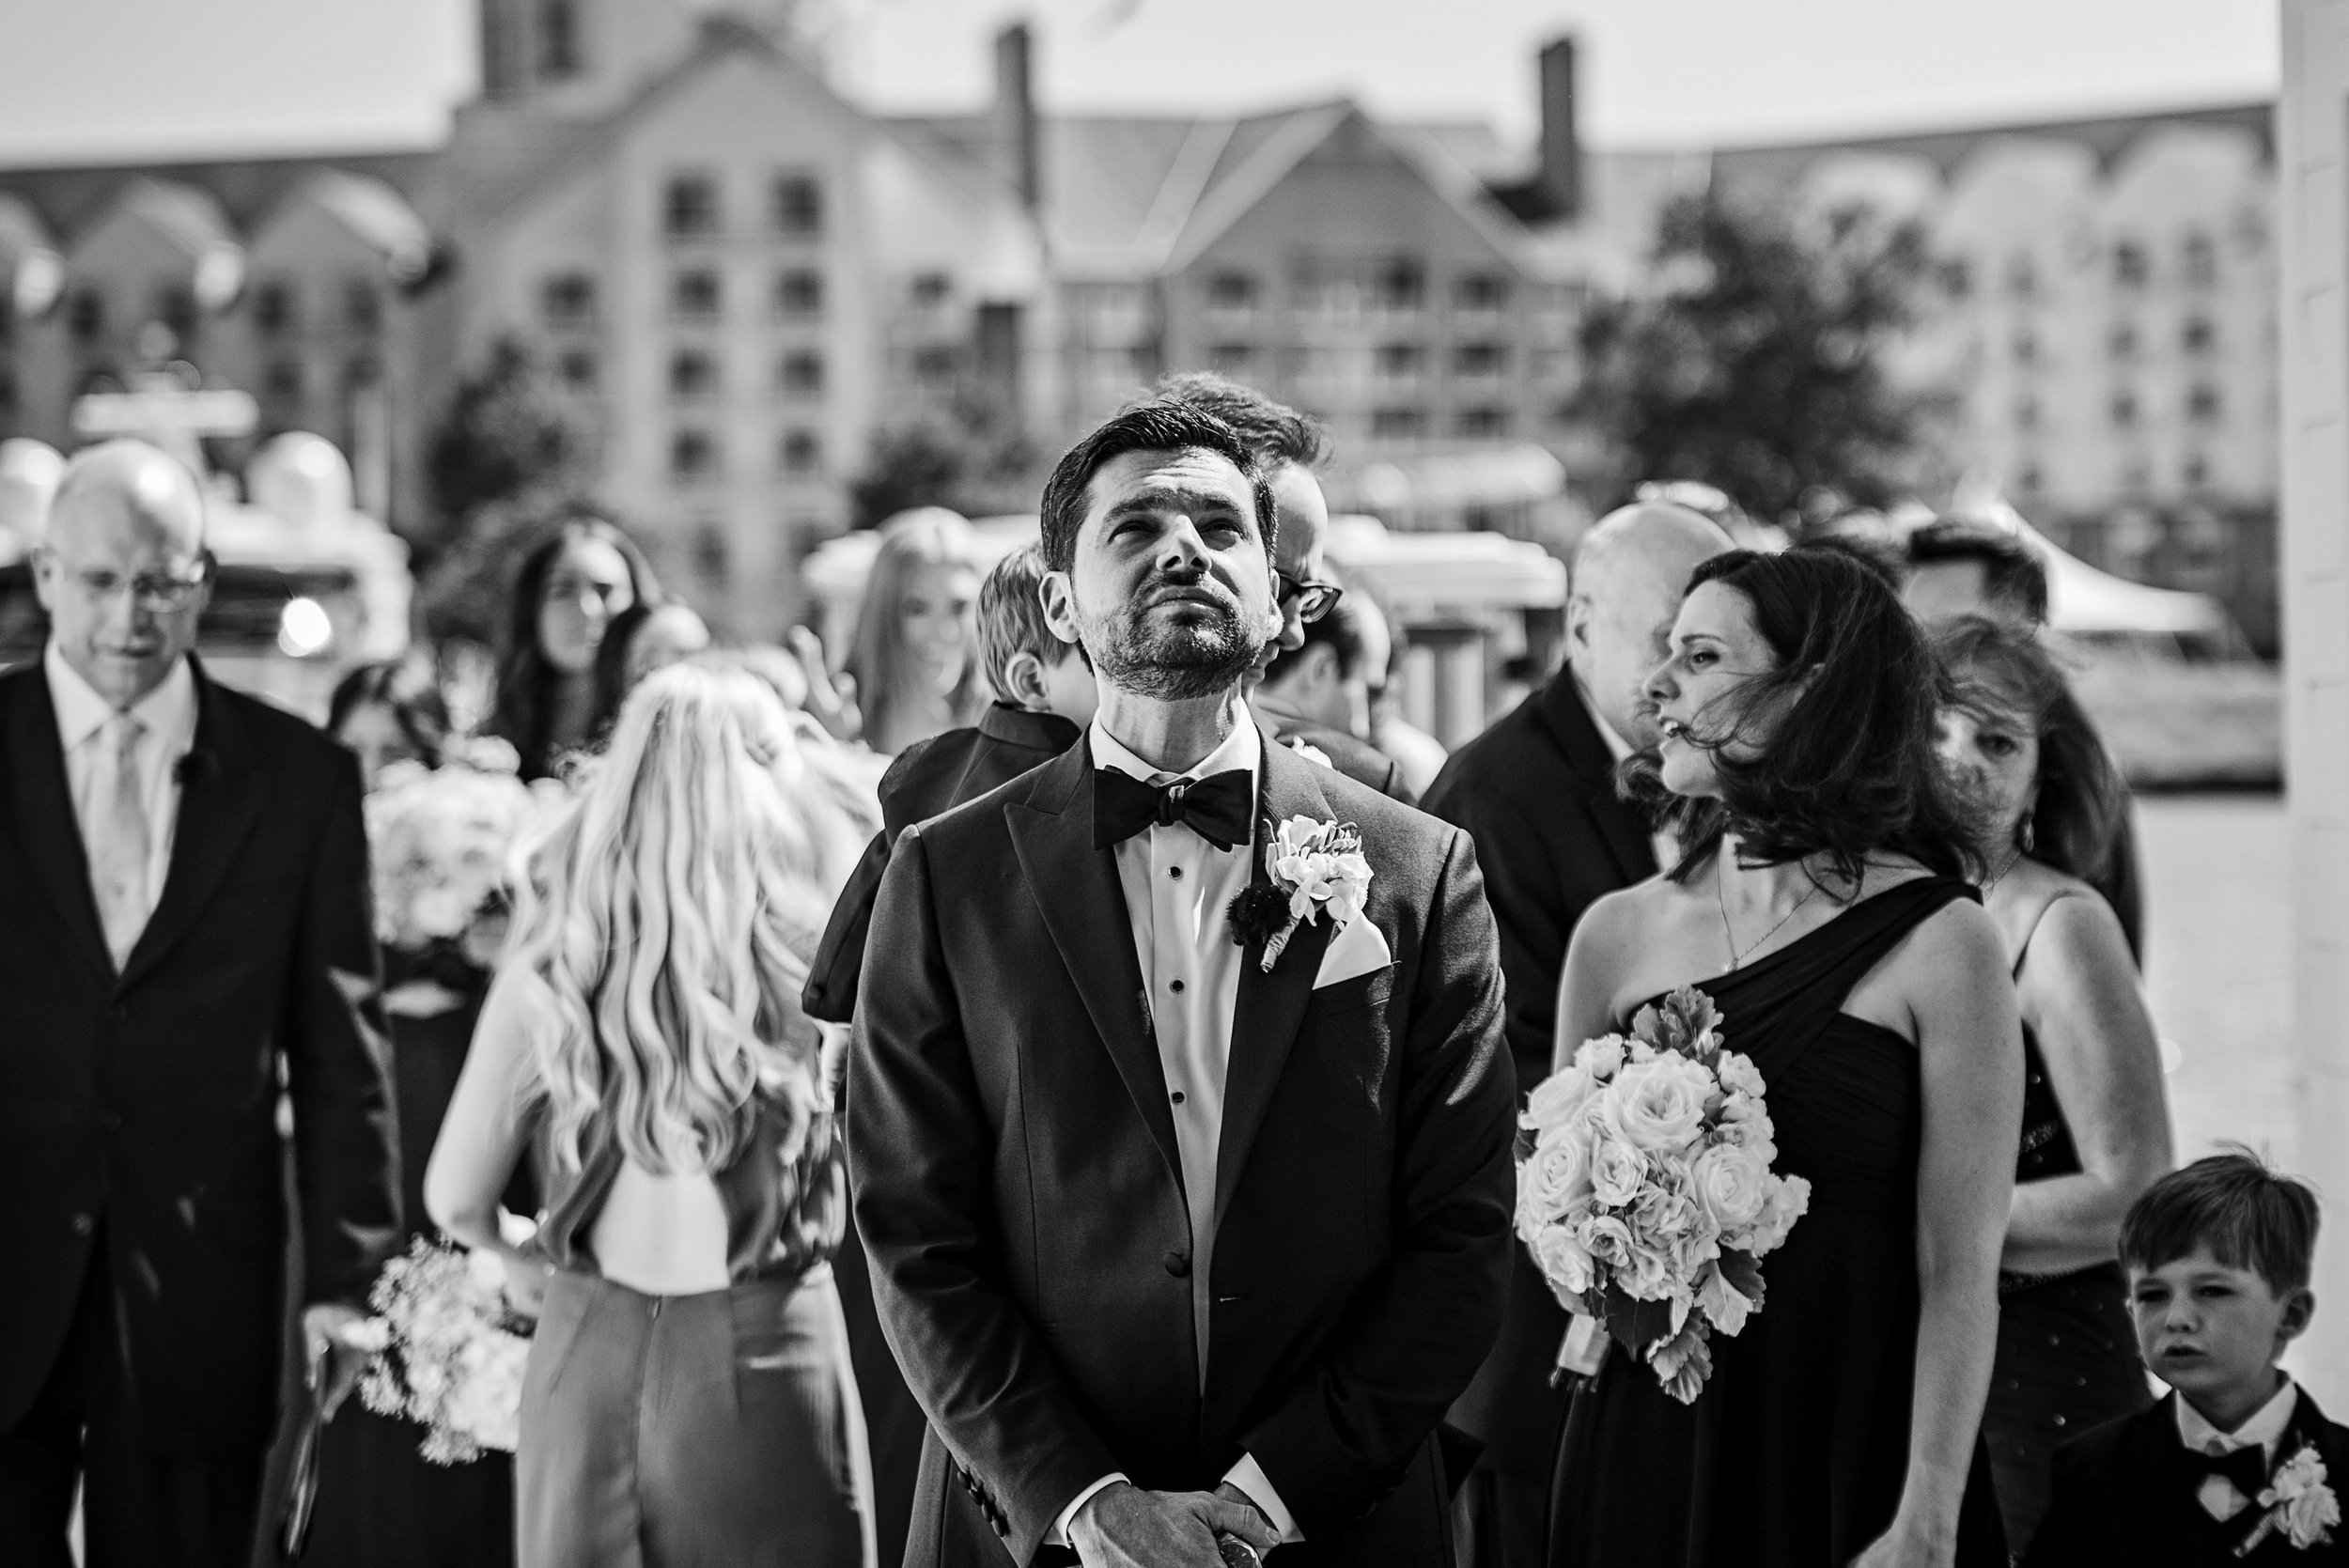 HyattRegencyCambridgeWedding-Amanda&Anthony-Ceremony-27.jpg